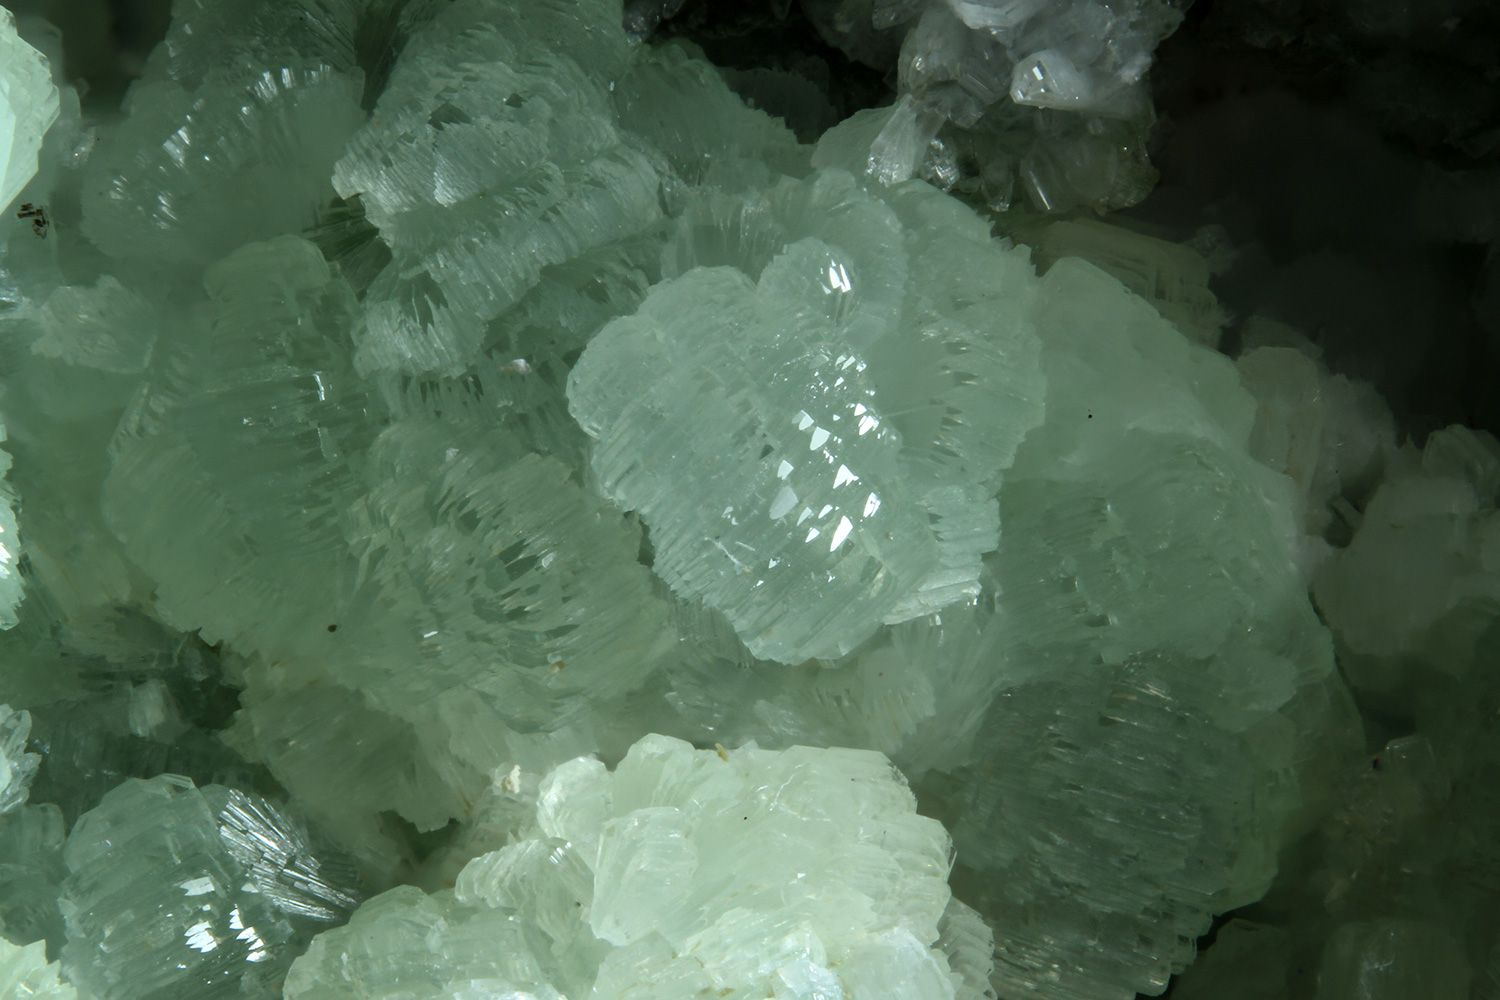 Typical botryoidal clusters of bottle-green prehnite crystals